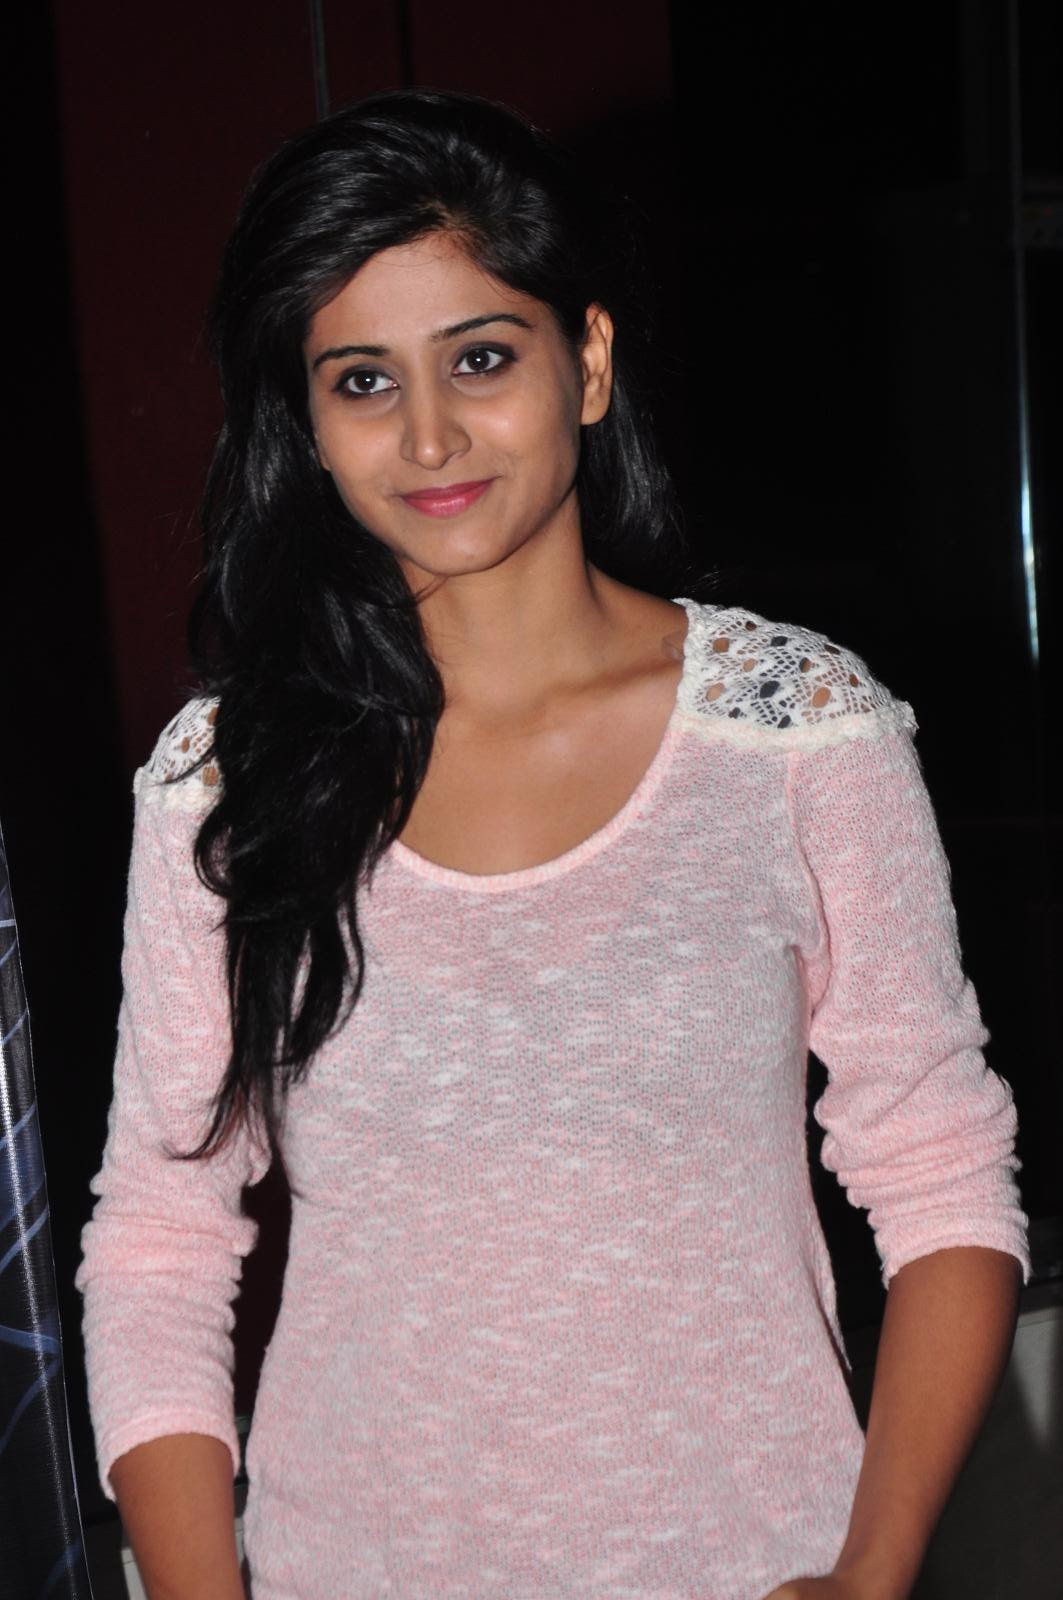 Shamili looks super cute young cool and beautiful in Transparent Tank top and Denim Jeans